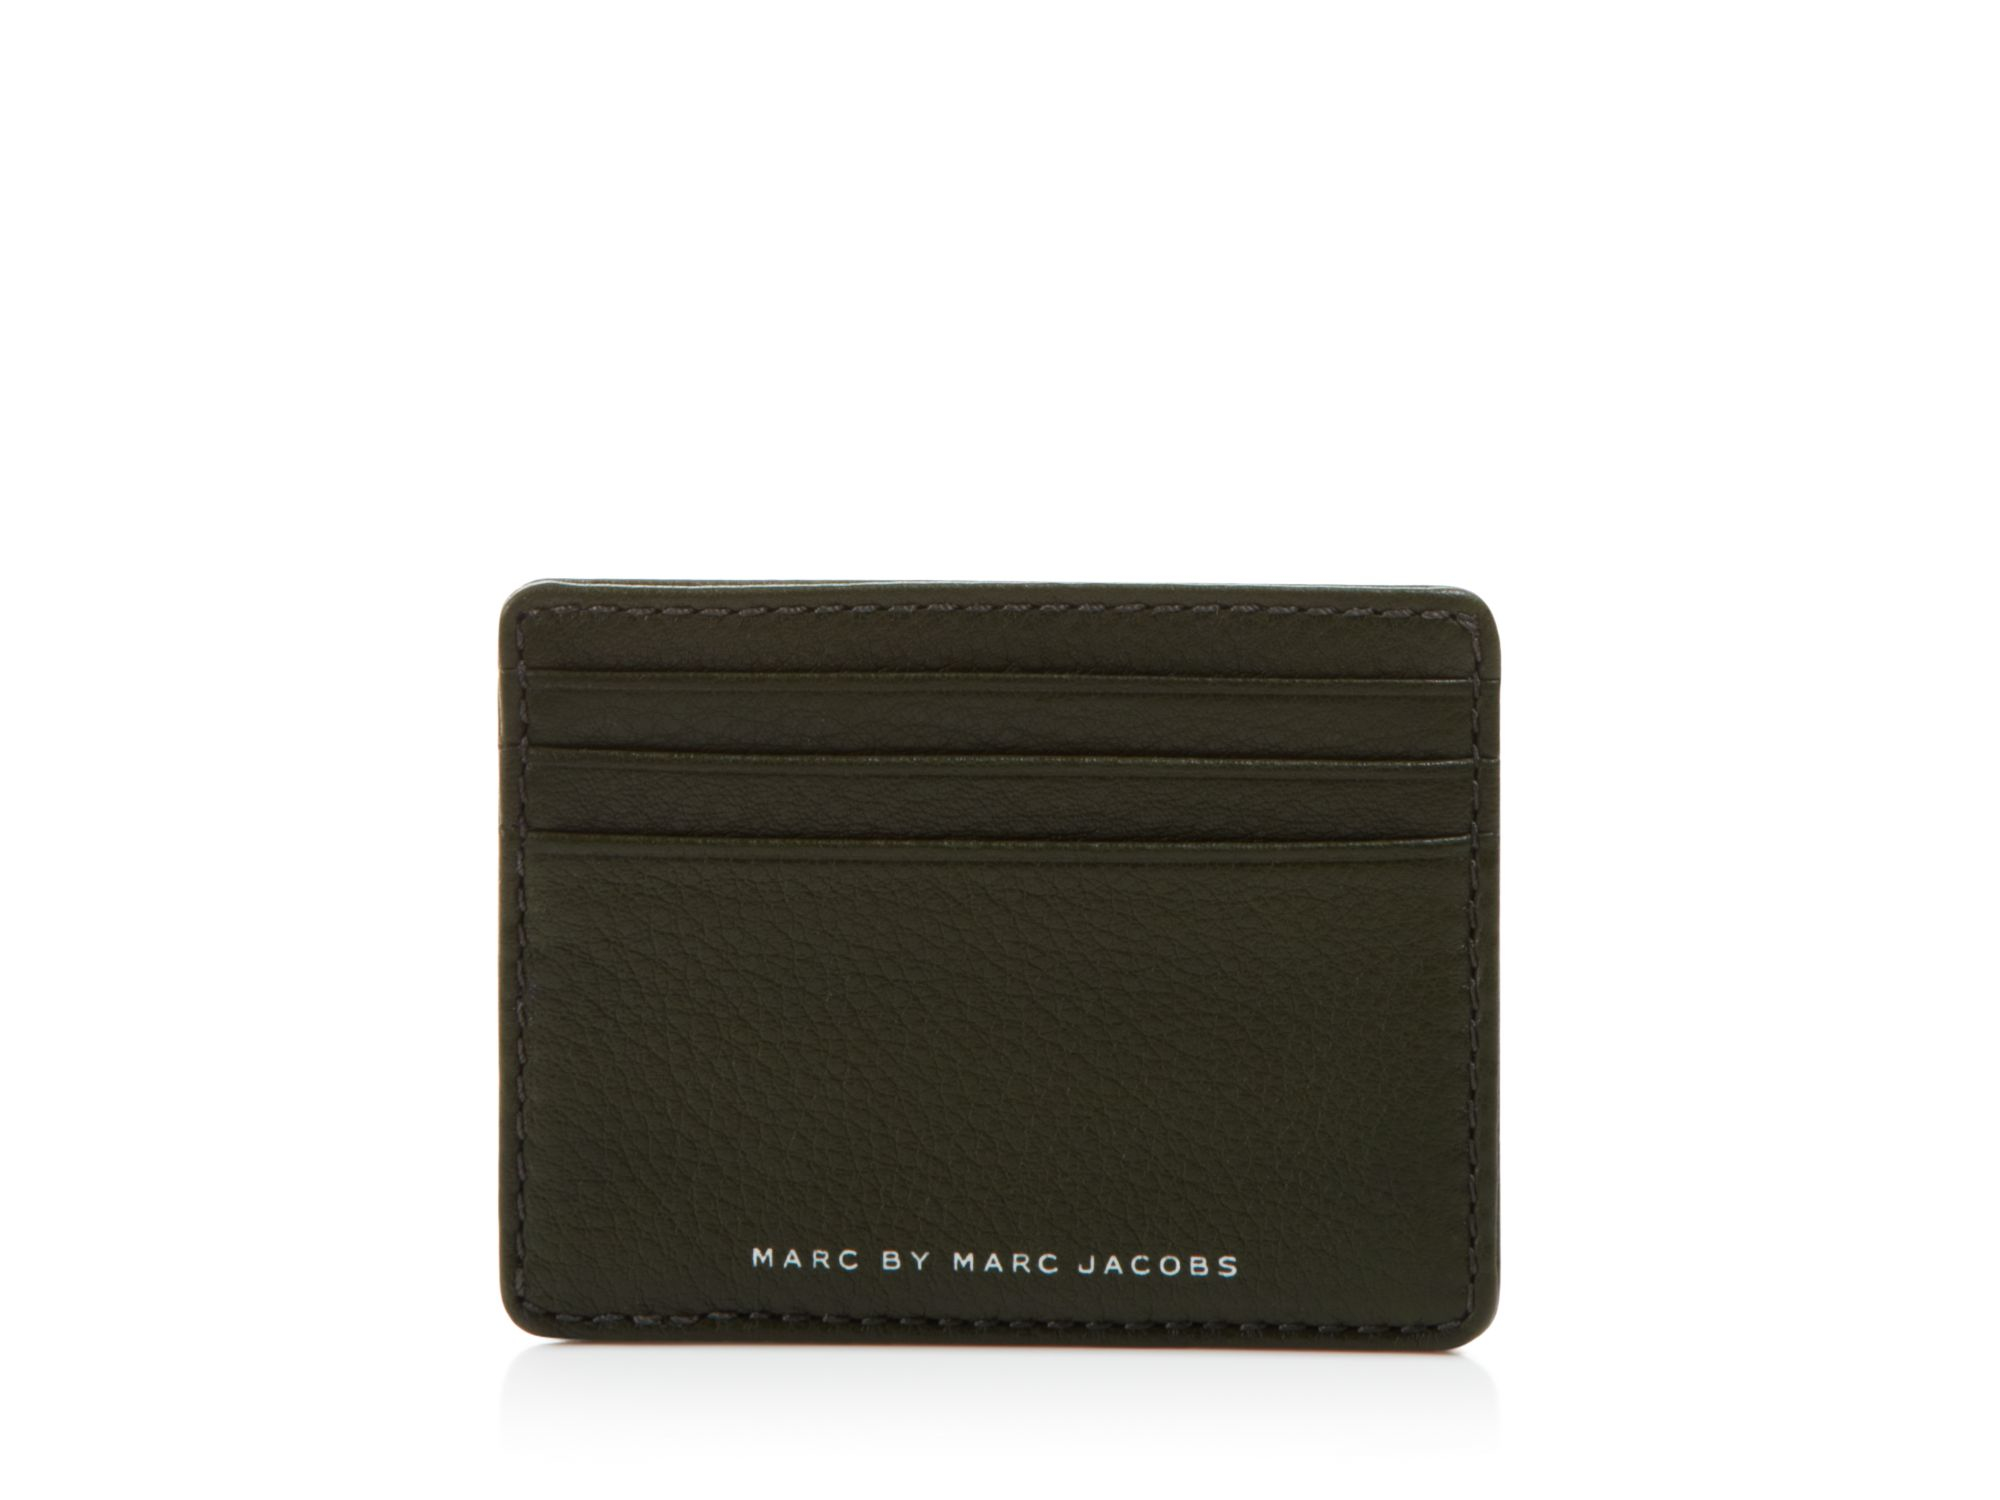 d3aee04bb5797 Lyst - Marc By Marc Jacobs Textured Leather Card Holder in Black for Men